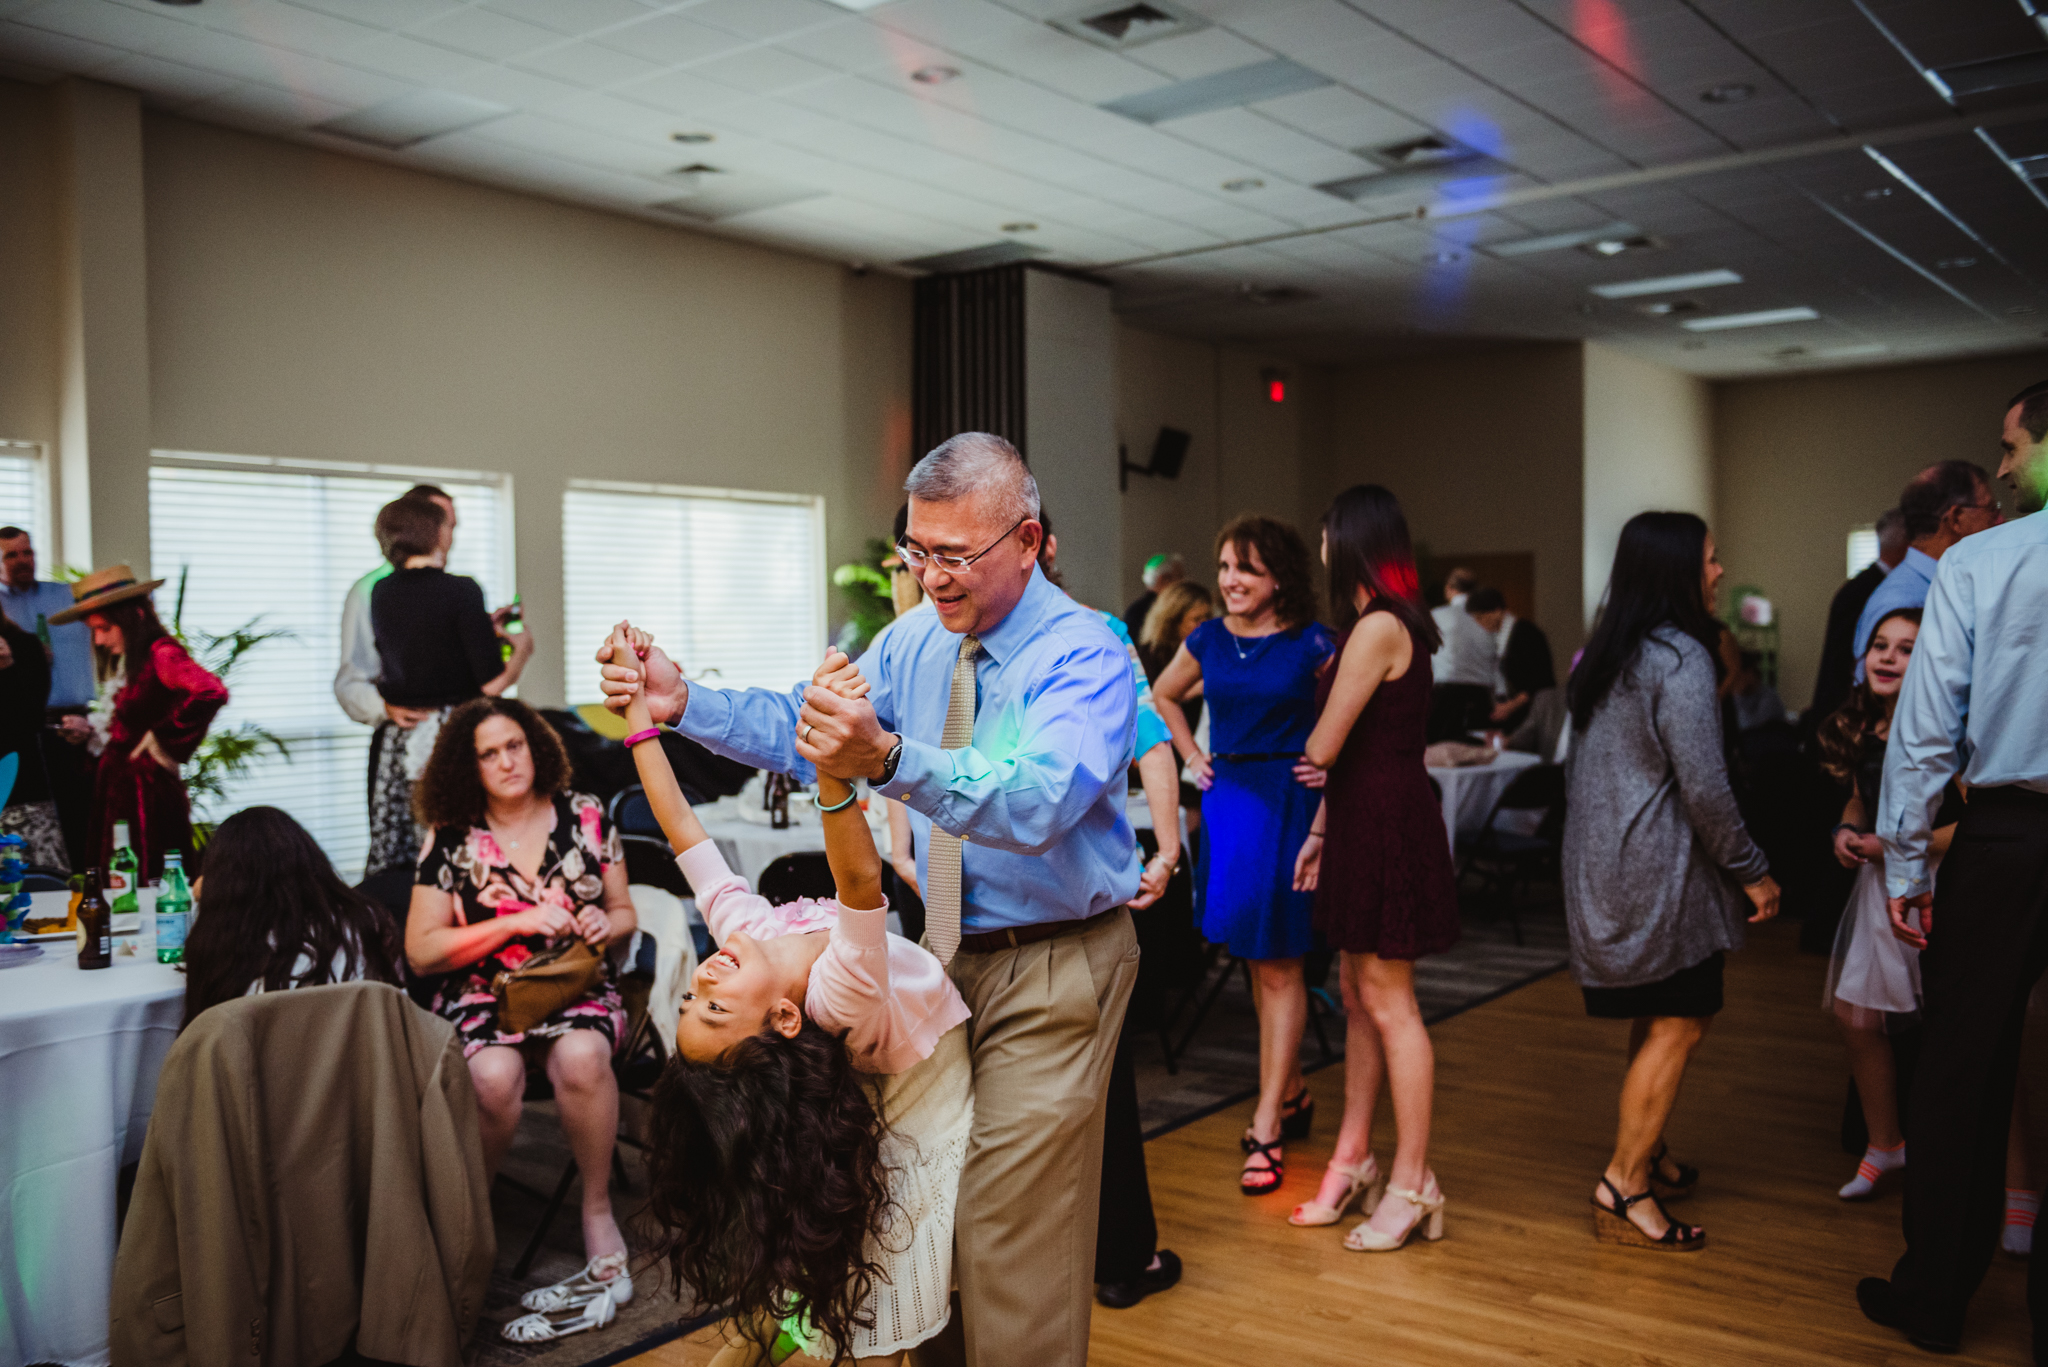 daddy-daughter-dancing-at-the-Mitzvah-celebration.jpg